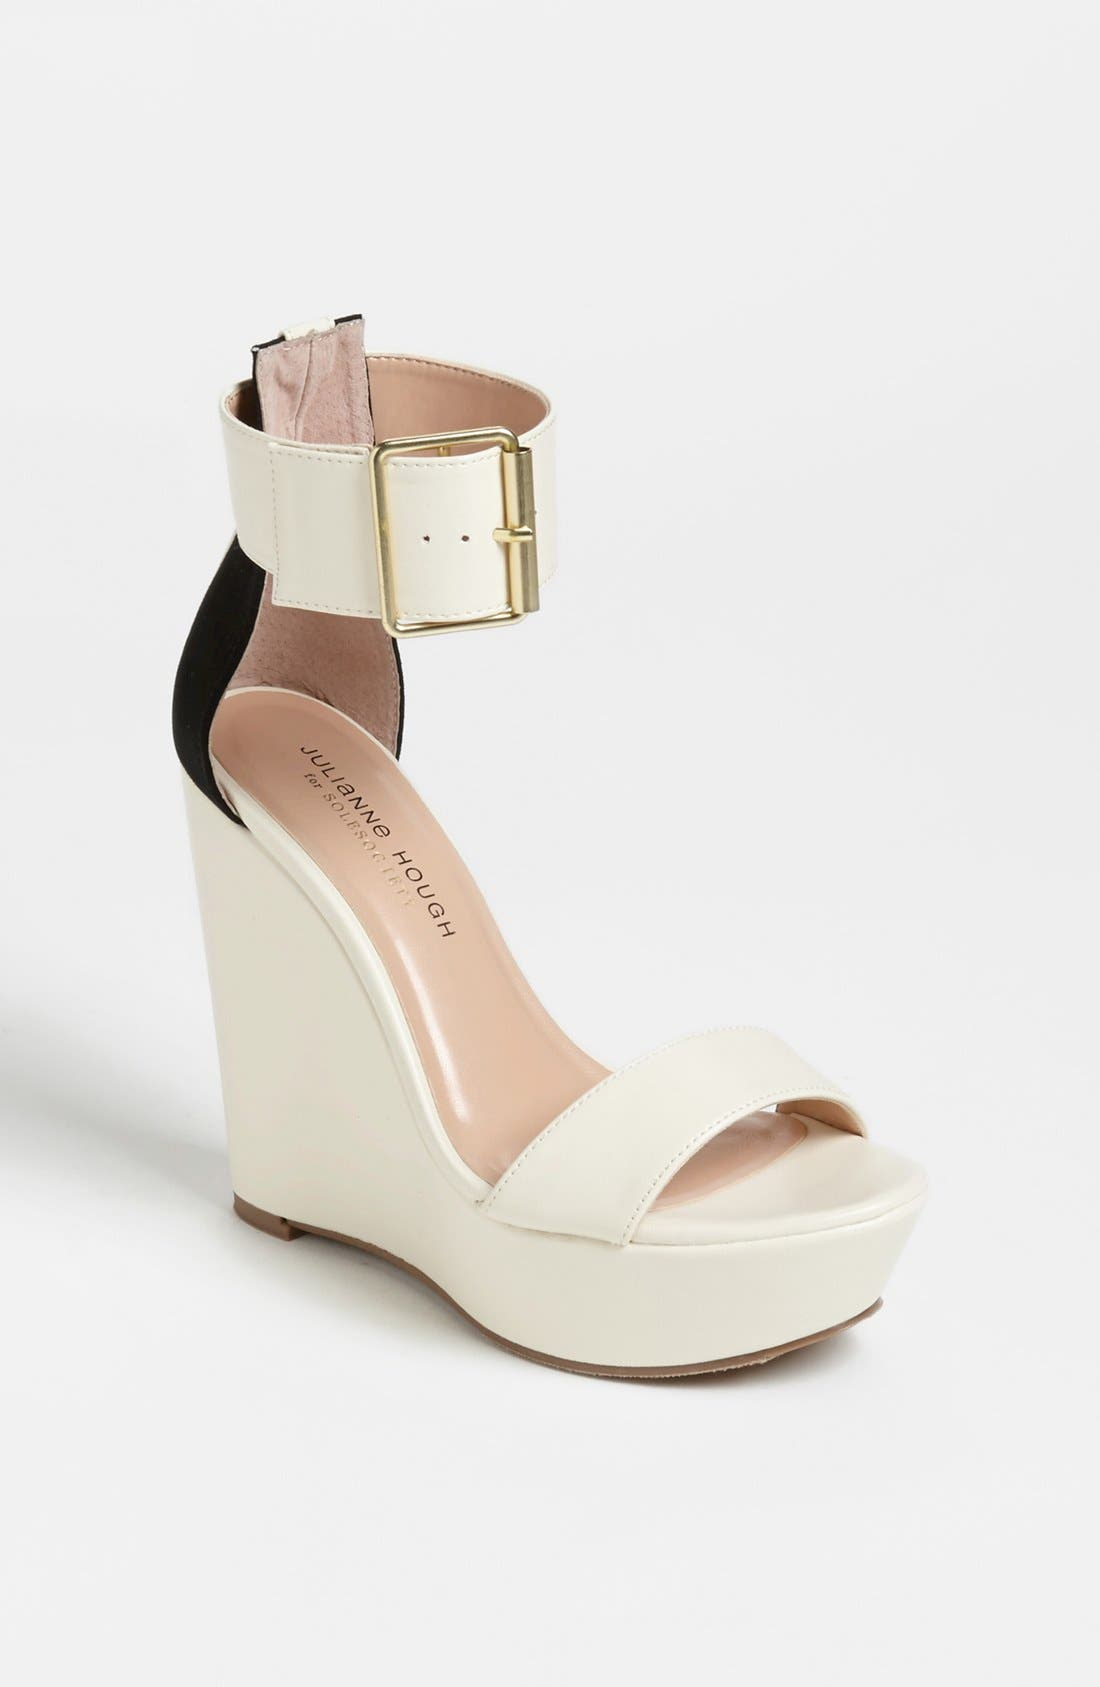 Alternate Image 1 Selected - Julianne Hough for Sole Society 'Tate' Wedge Sandal